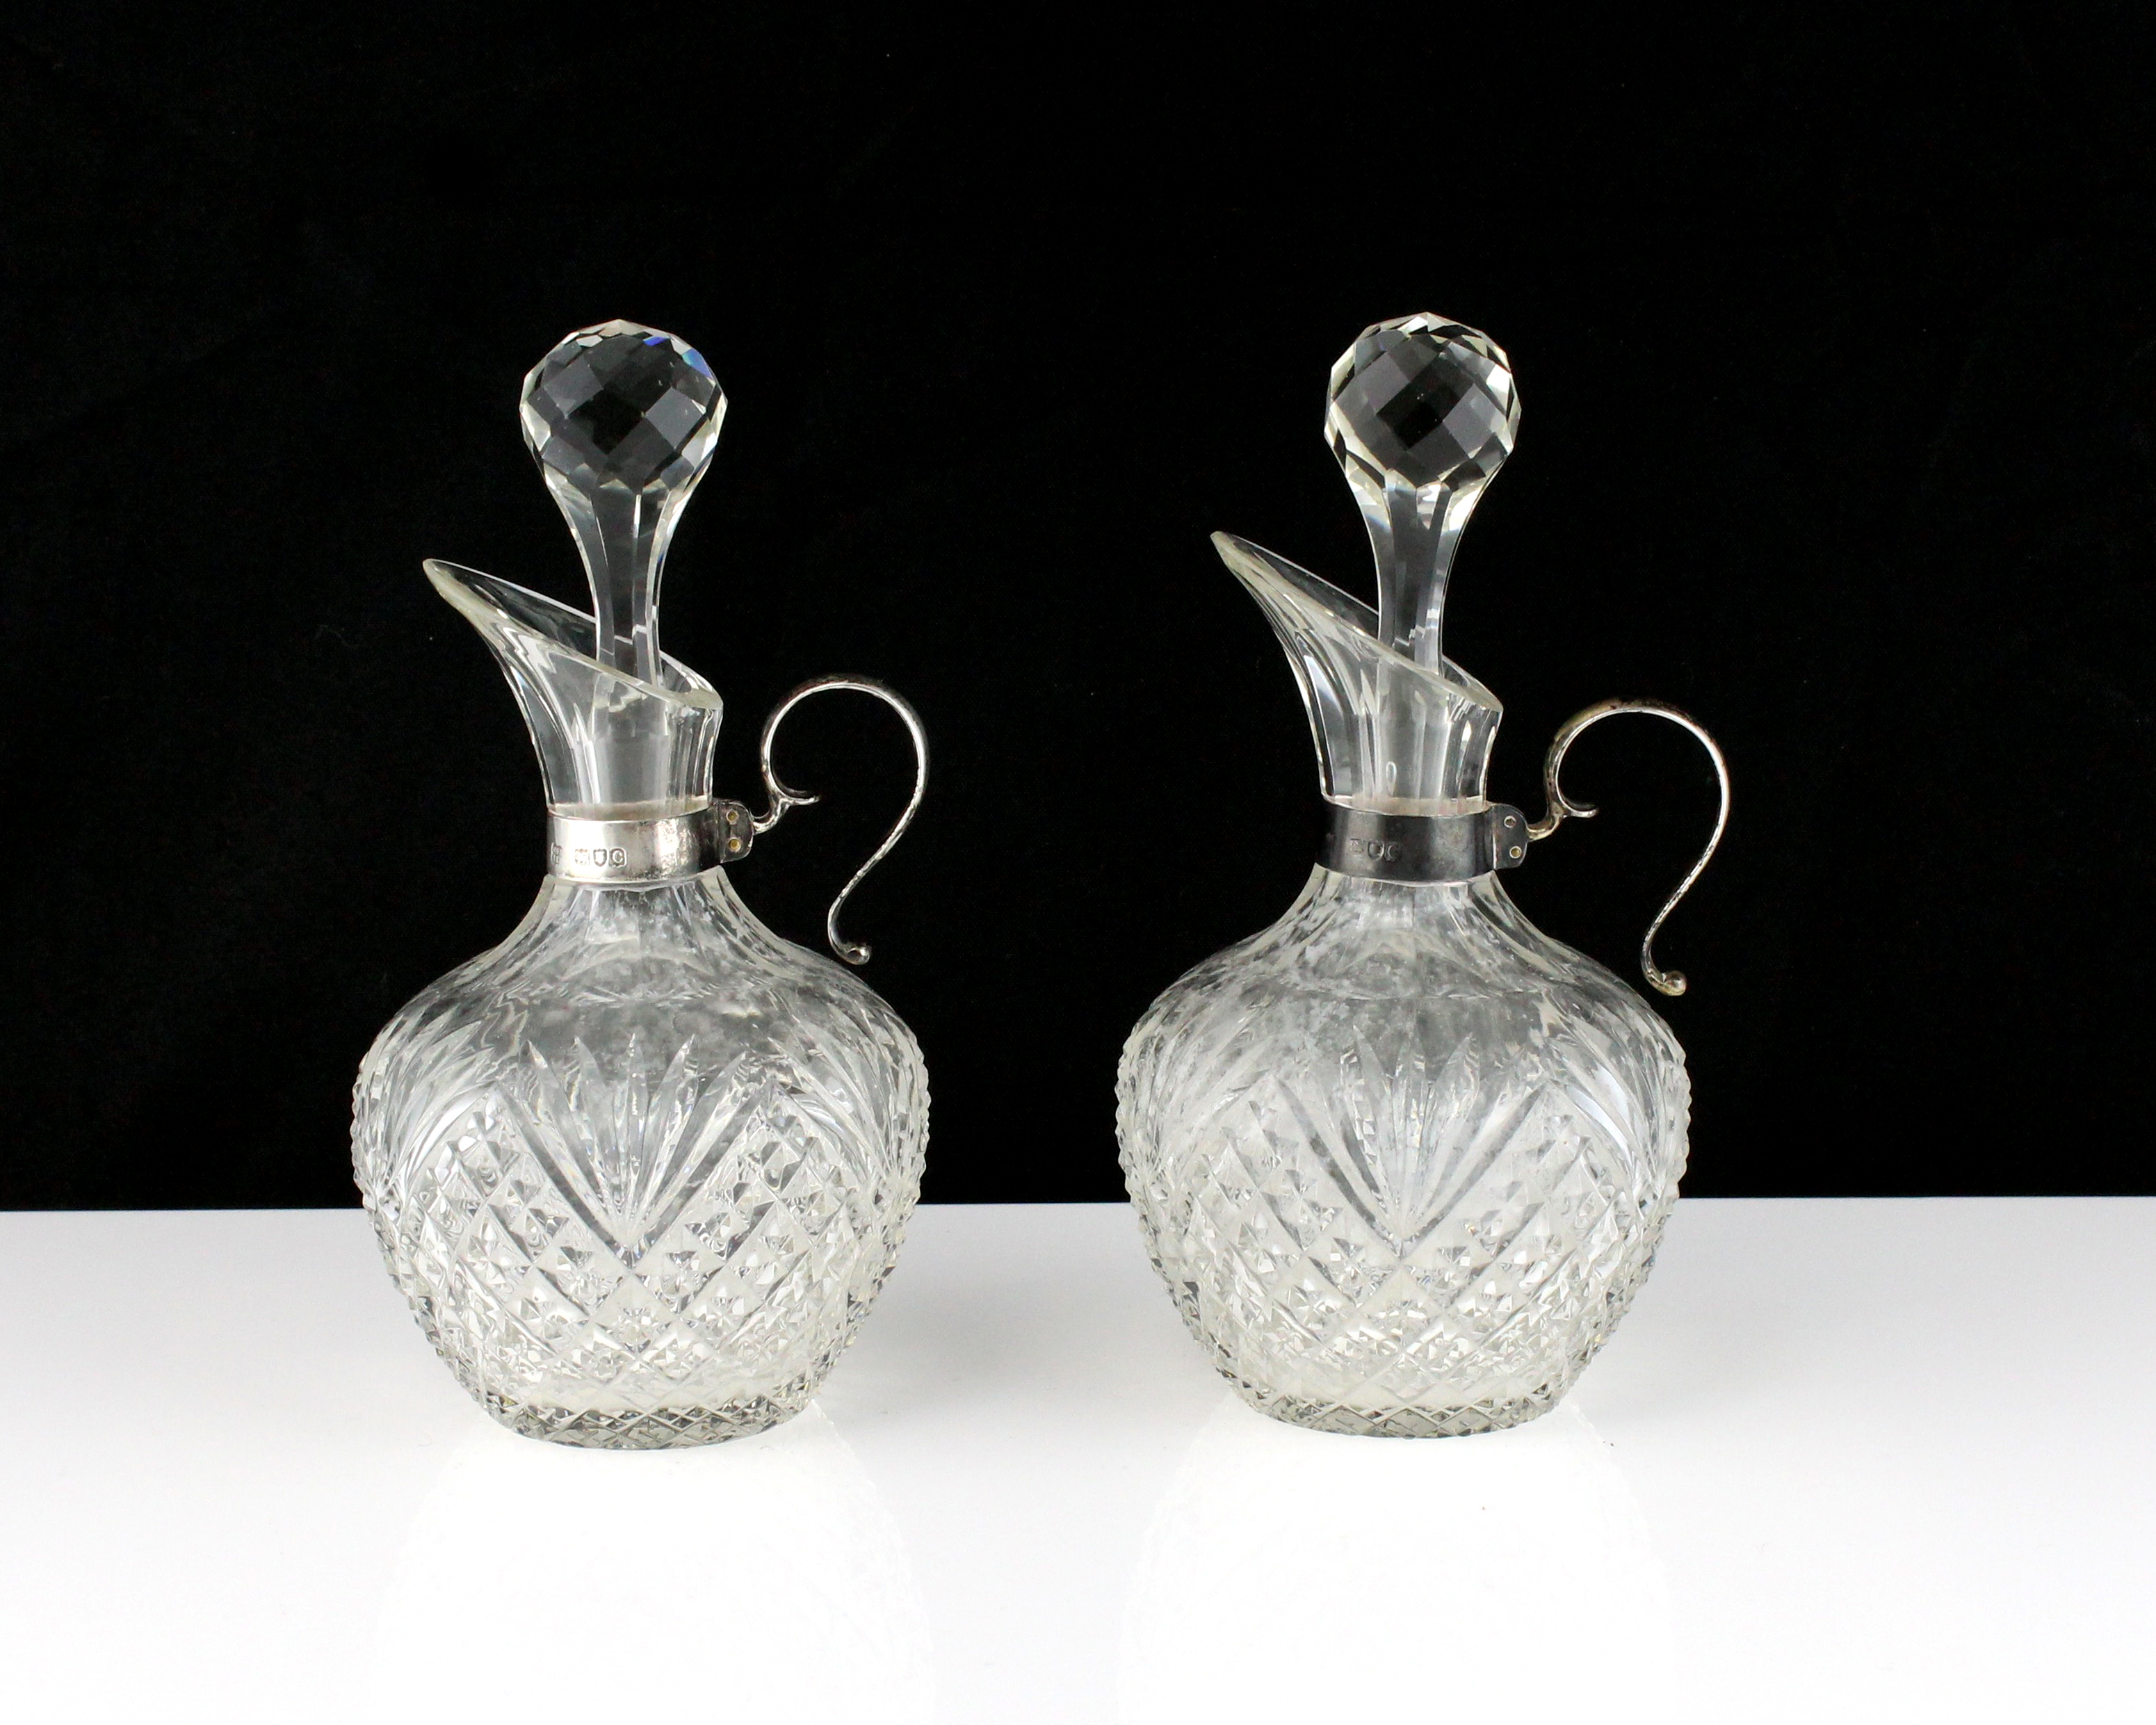 Los 59 - A pair of antique Victorian Sterling Silver mounted oil and vinegar jugs by the Betjemann